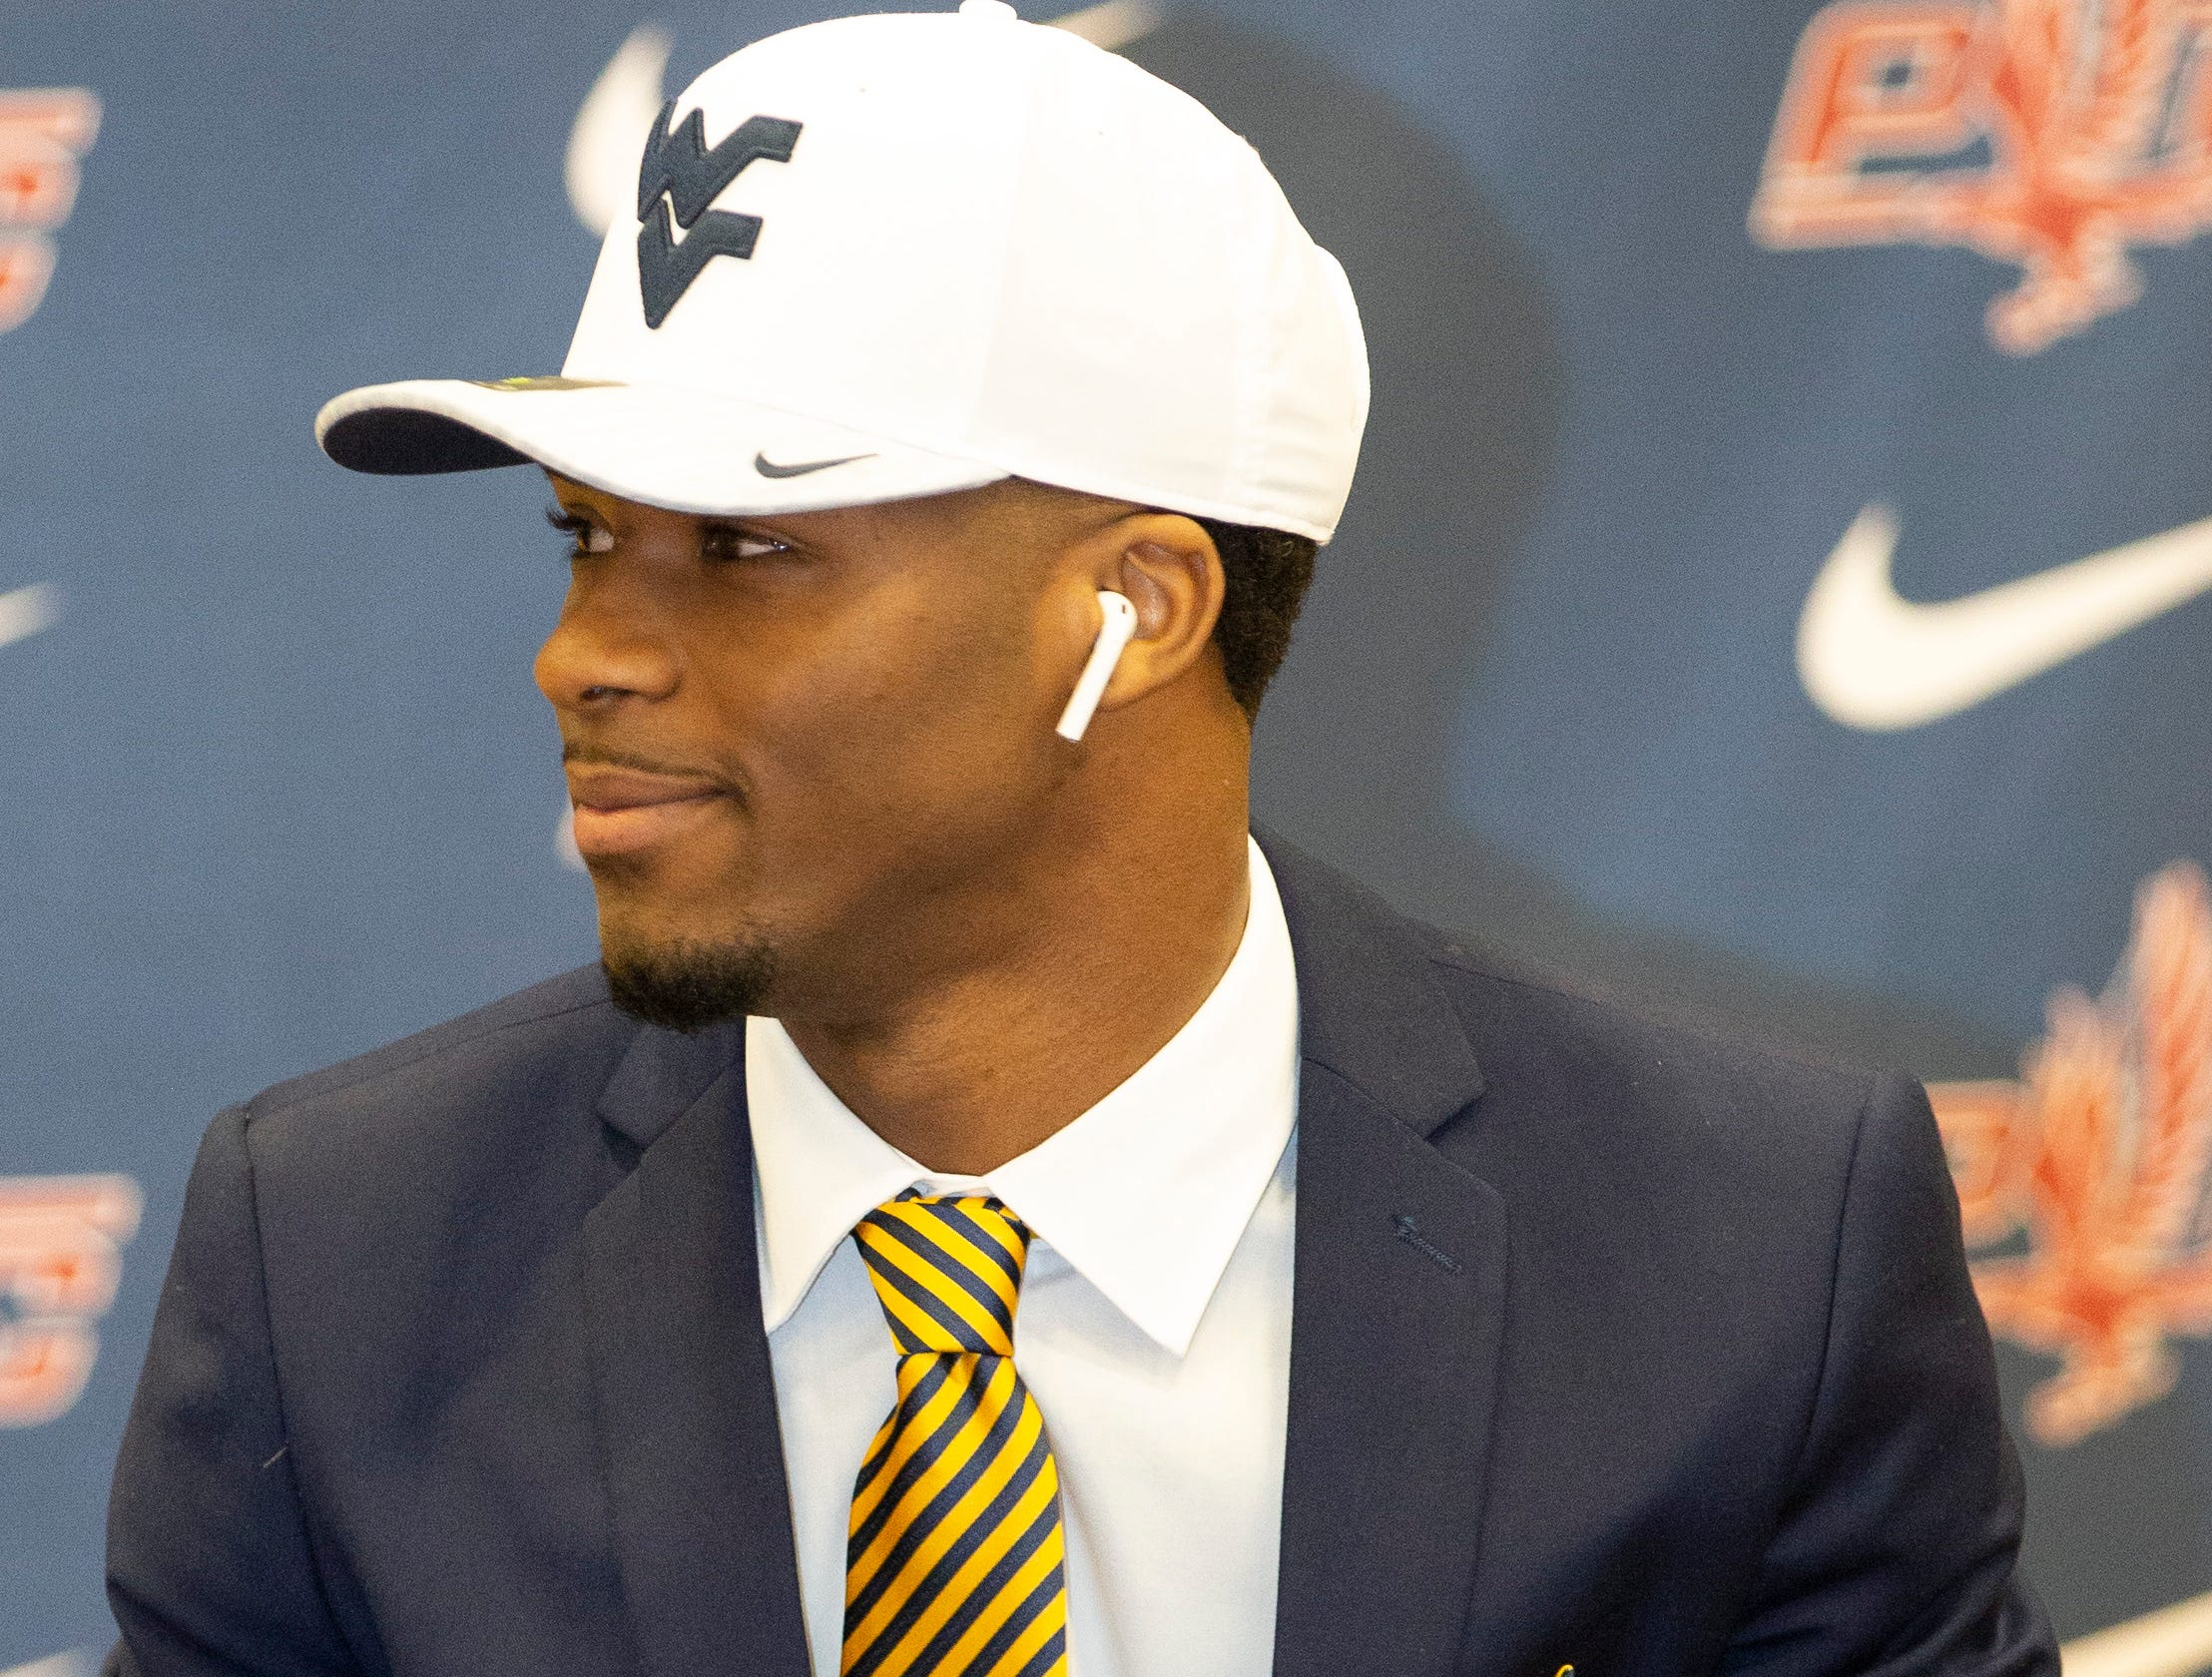 Tacorey Turner, a football player at Park Crossing, signed with West Virginia.